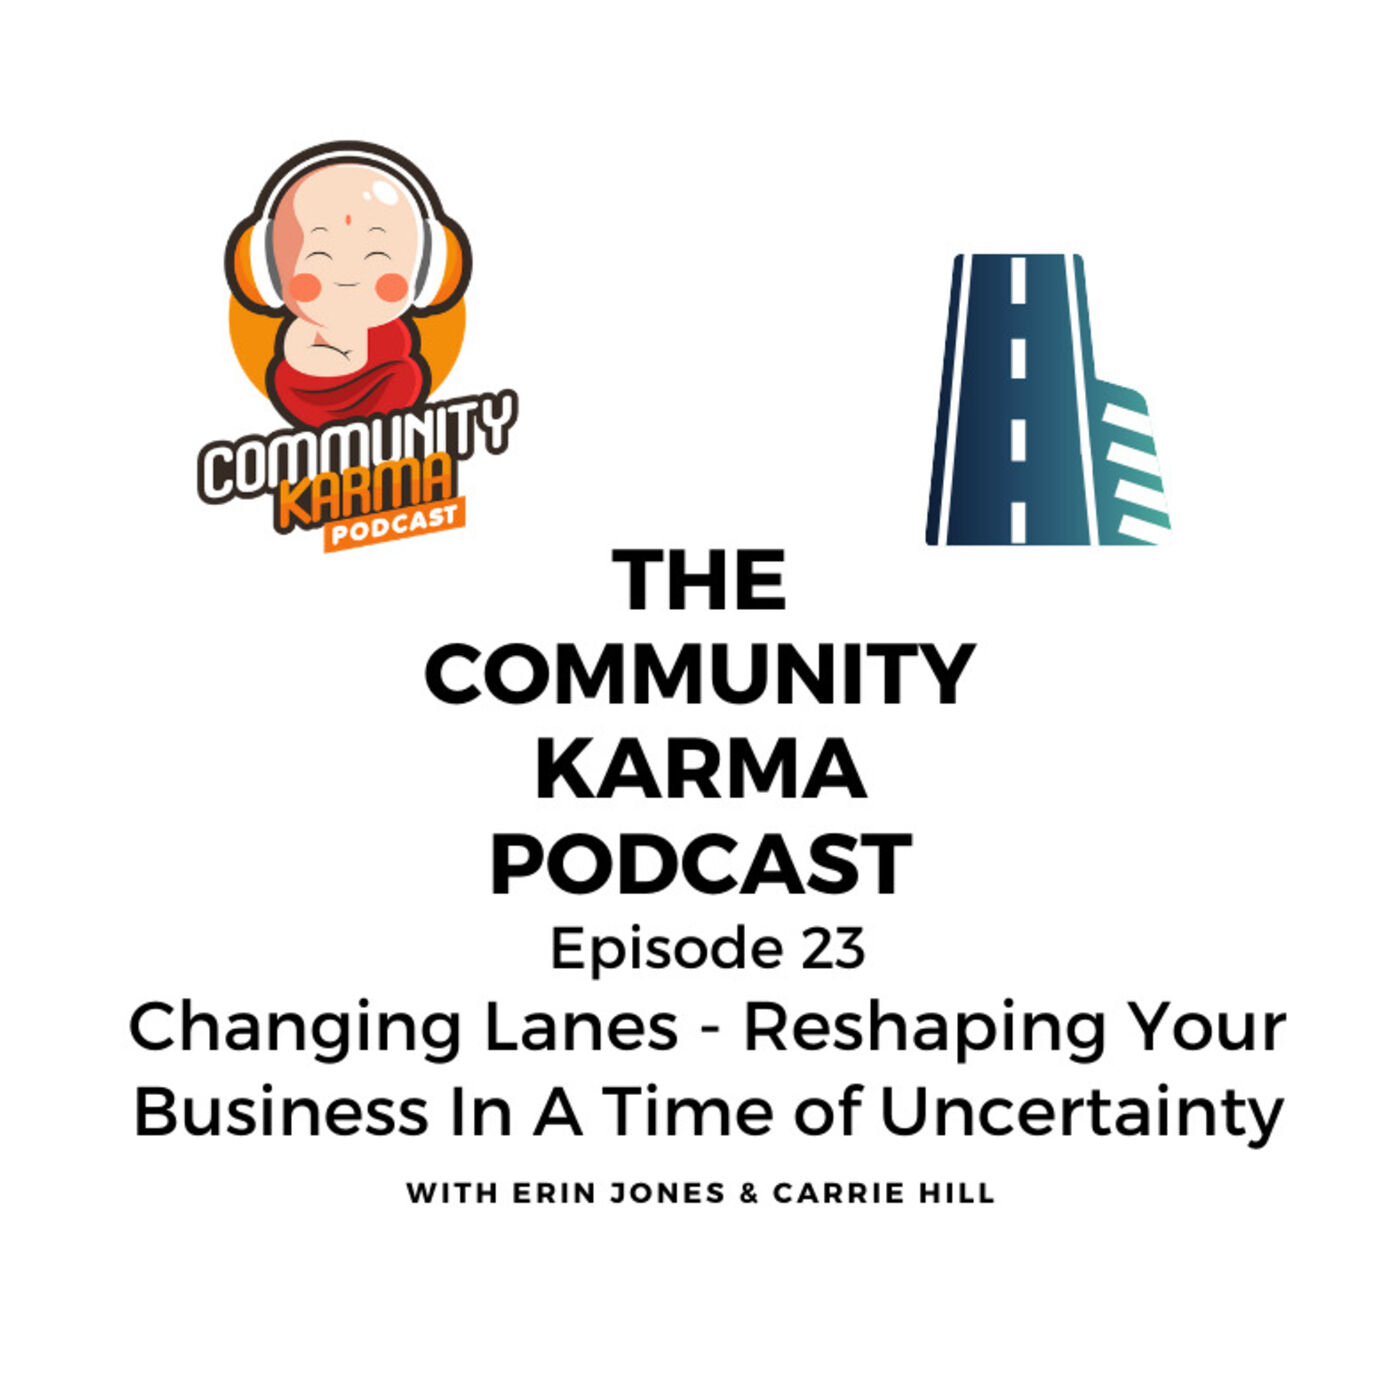 Episode 23: Changing Lanes - Reshaping Your Business In A Time of Uncertainty